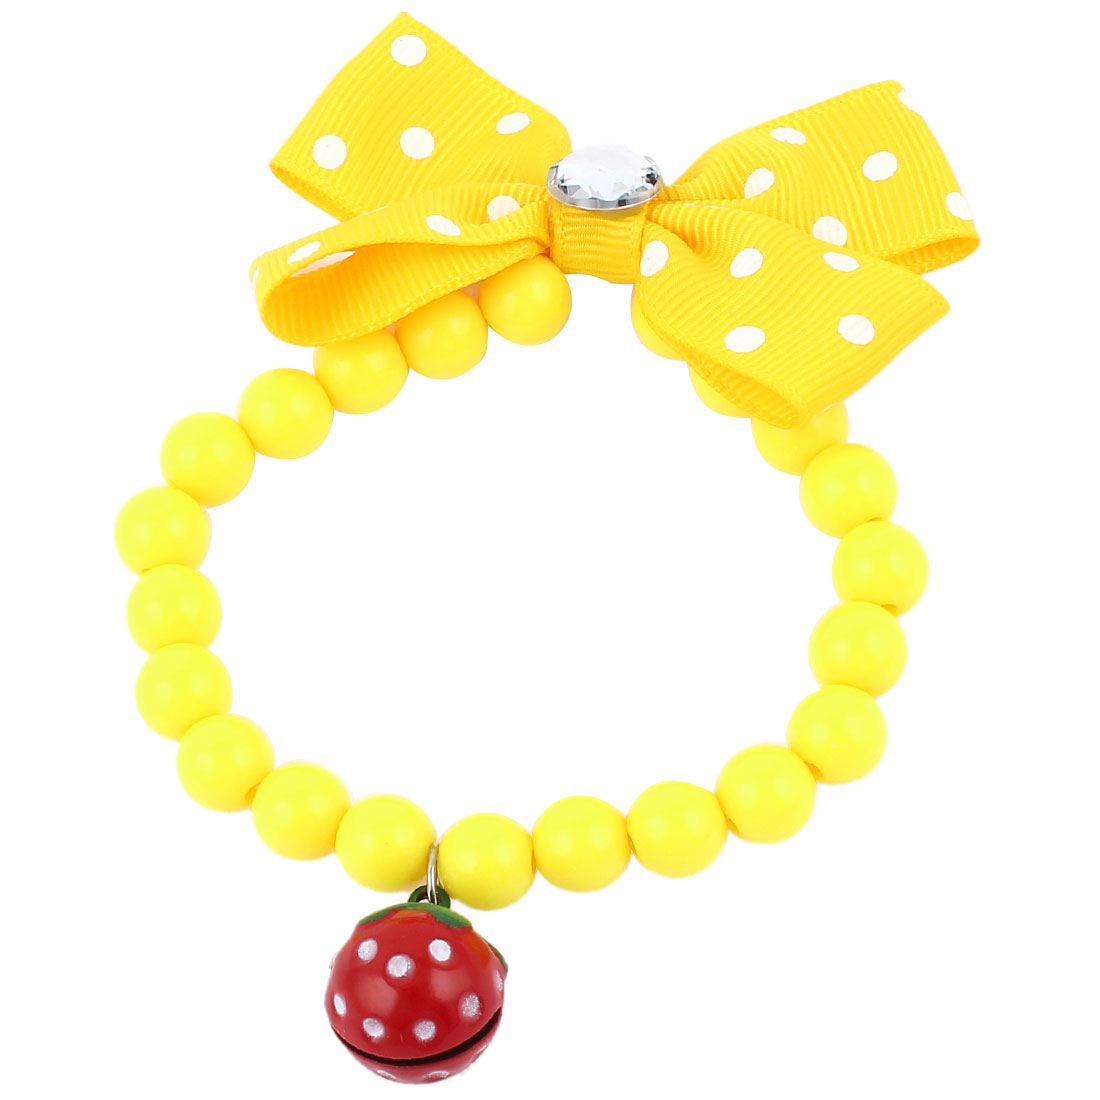 Faux Crystal Bowtie Accent Pet Dog Plastic Beads Collar Necklace Yellow XS